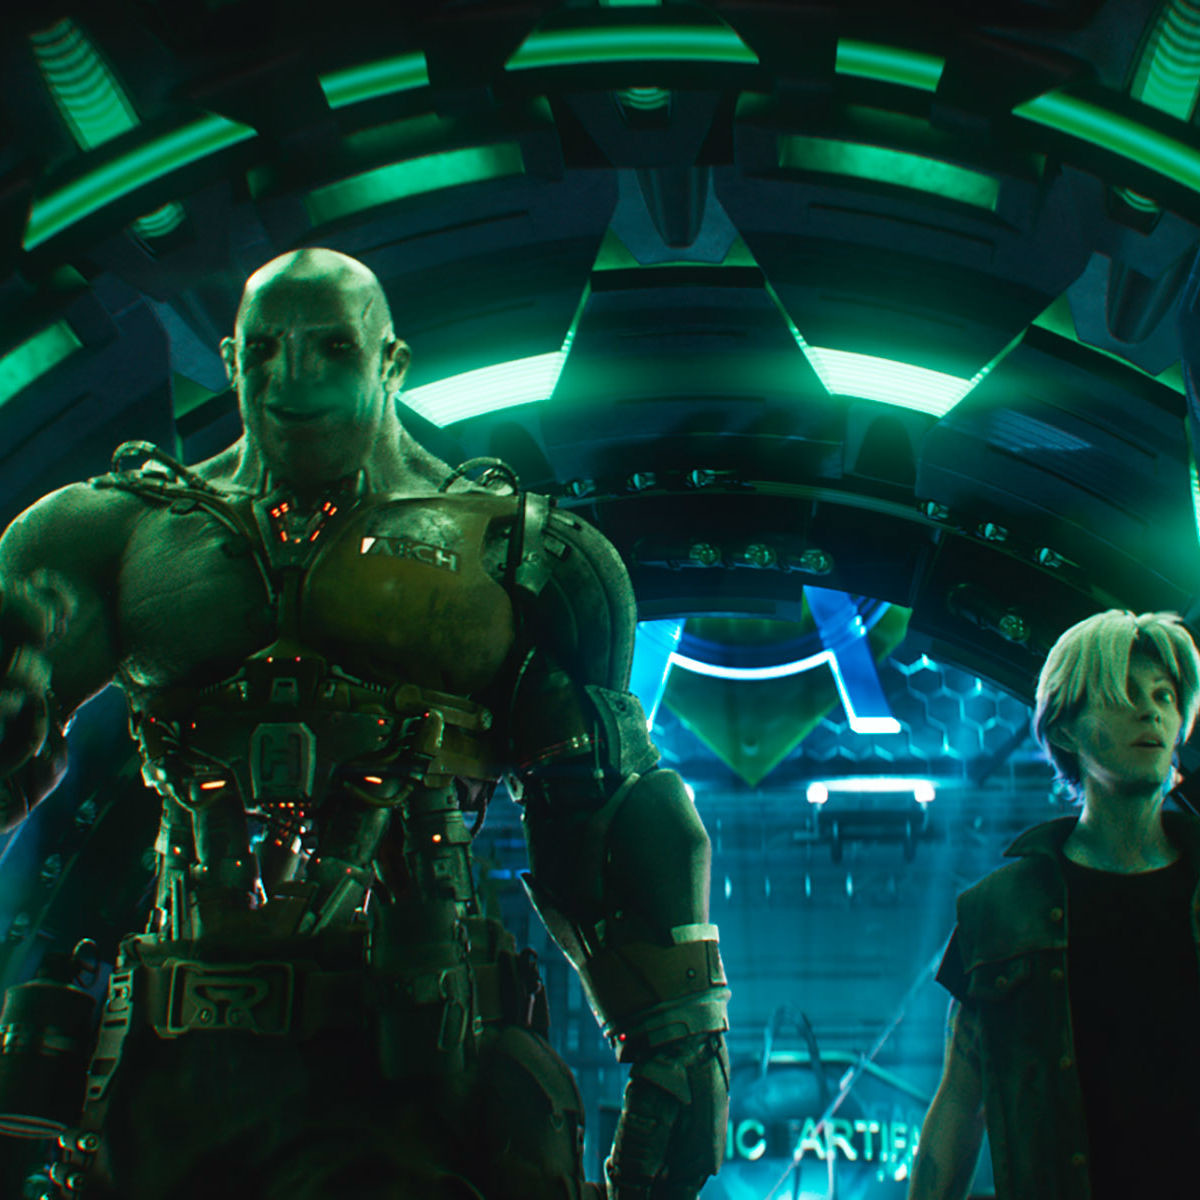 Aech and Parzival in Ready Player One